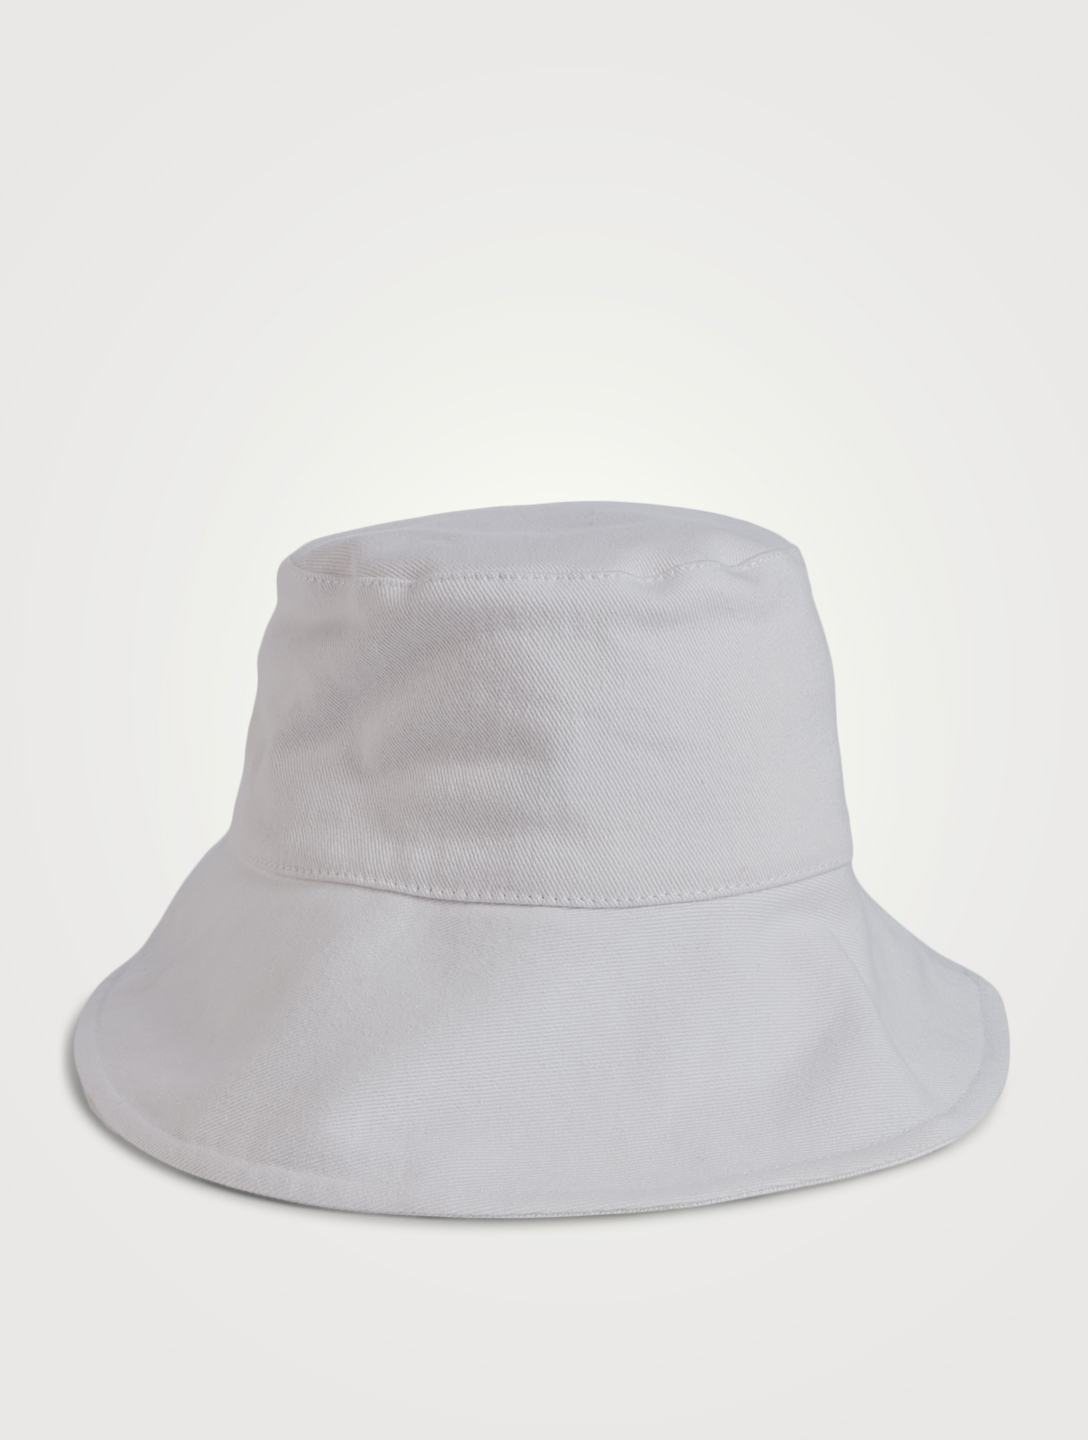 ISABEL MARANT Loiena Denim Bucket Hat Women's White